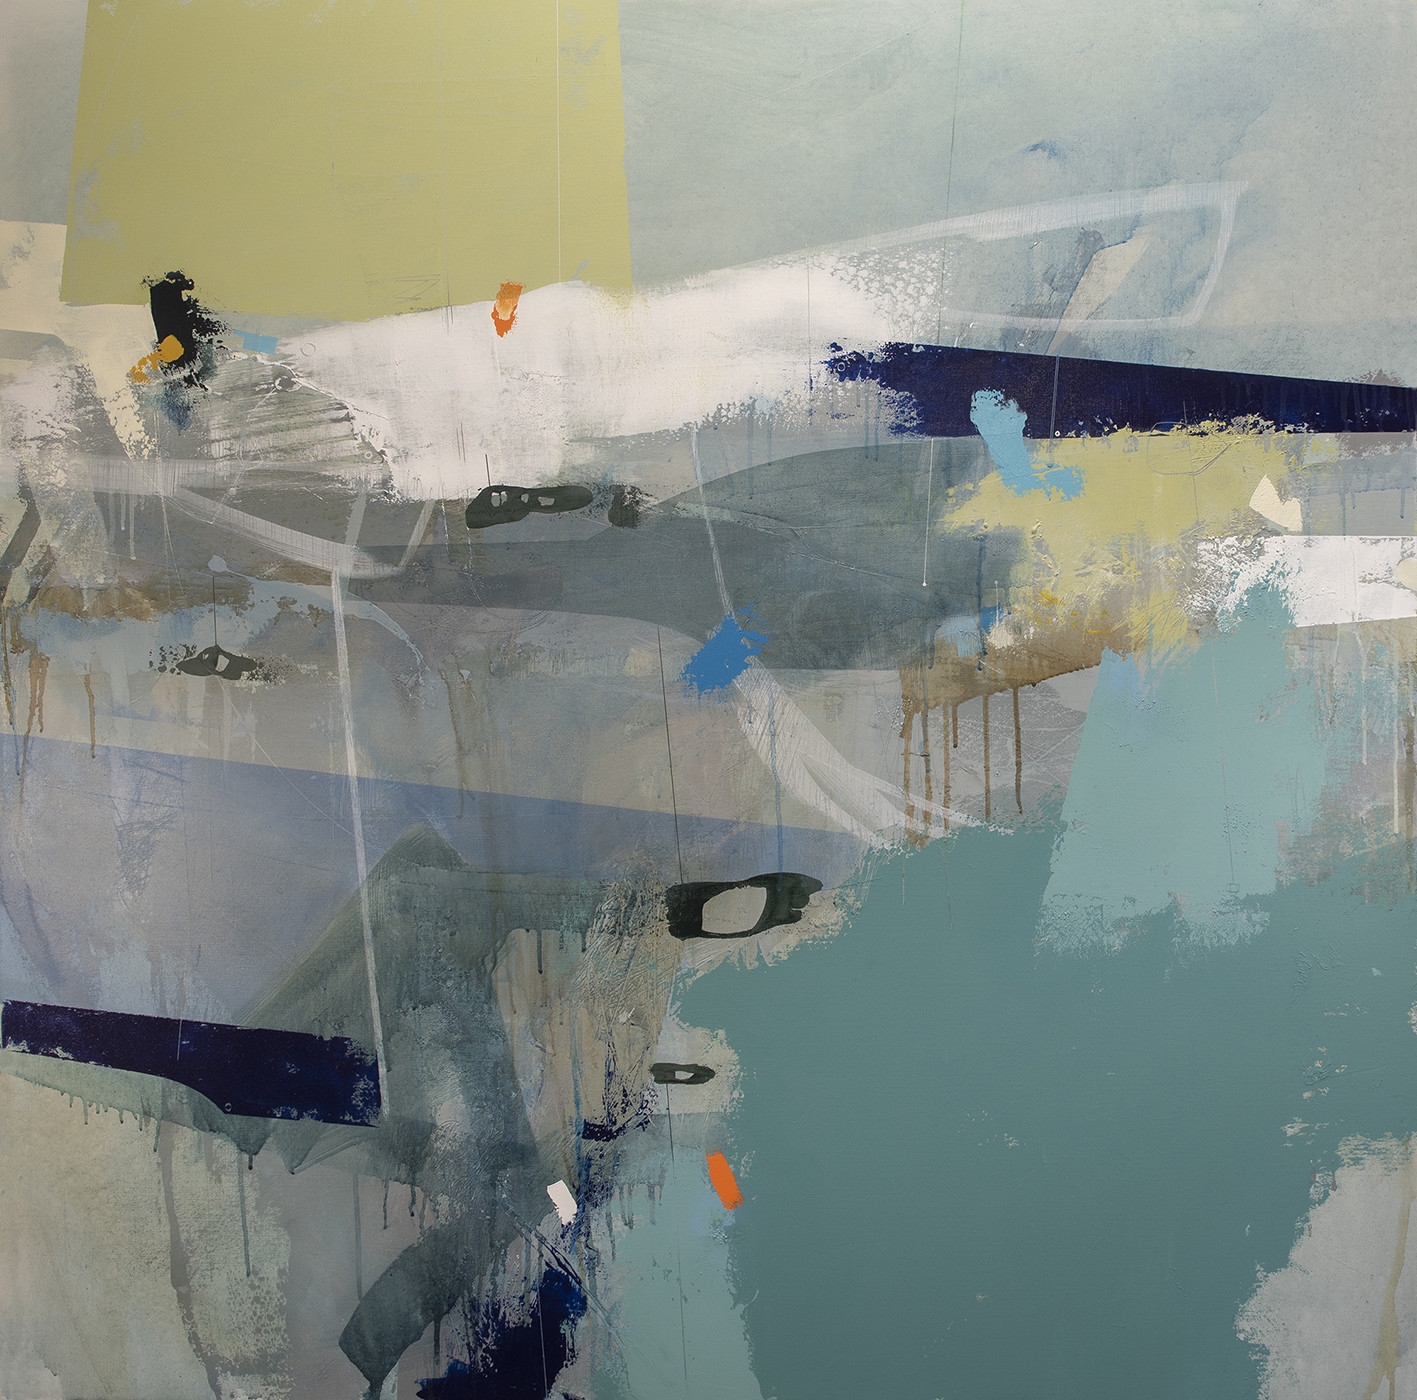 <span class=&#34;link fancybox-details-link&#34;><a href=&#34;/artists/77-andrew-bird/works/6201-andrew-bird-overfall-2019/&#34;>View Detail Page</a></span><div class=&#34;artist&#34;><strong>Andrew Bird</strong></div> <div class=&#34;title&#34;><em>Overfall</em>, 2019</div> <div class=&#34;signed_and_dated&#34;>signed, titled and dated on reverse</div> <div class=&#34;medium&#34;>acrylic on canvas</div> <div class=&#34;dimensions&#34;>h 122 x w 122 cm<br /> 48 1/8 x 48 1/8 in</div><div class=&#34;price&#34;>£4,950.00</div><div class=&#34;copyright_line&#34;>Own Art: £ 250 x 10 Months, 0% APR + £2,450</div>